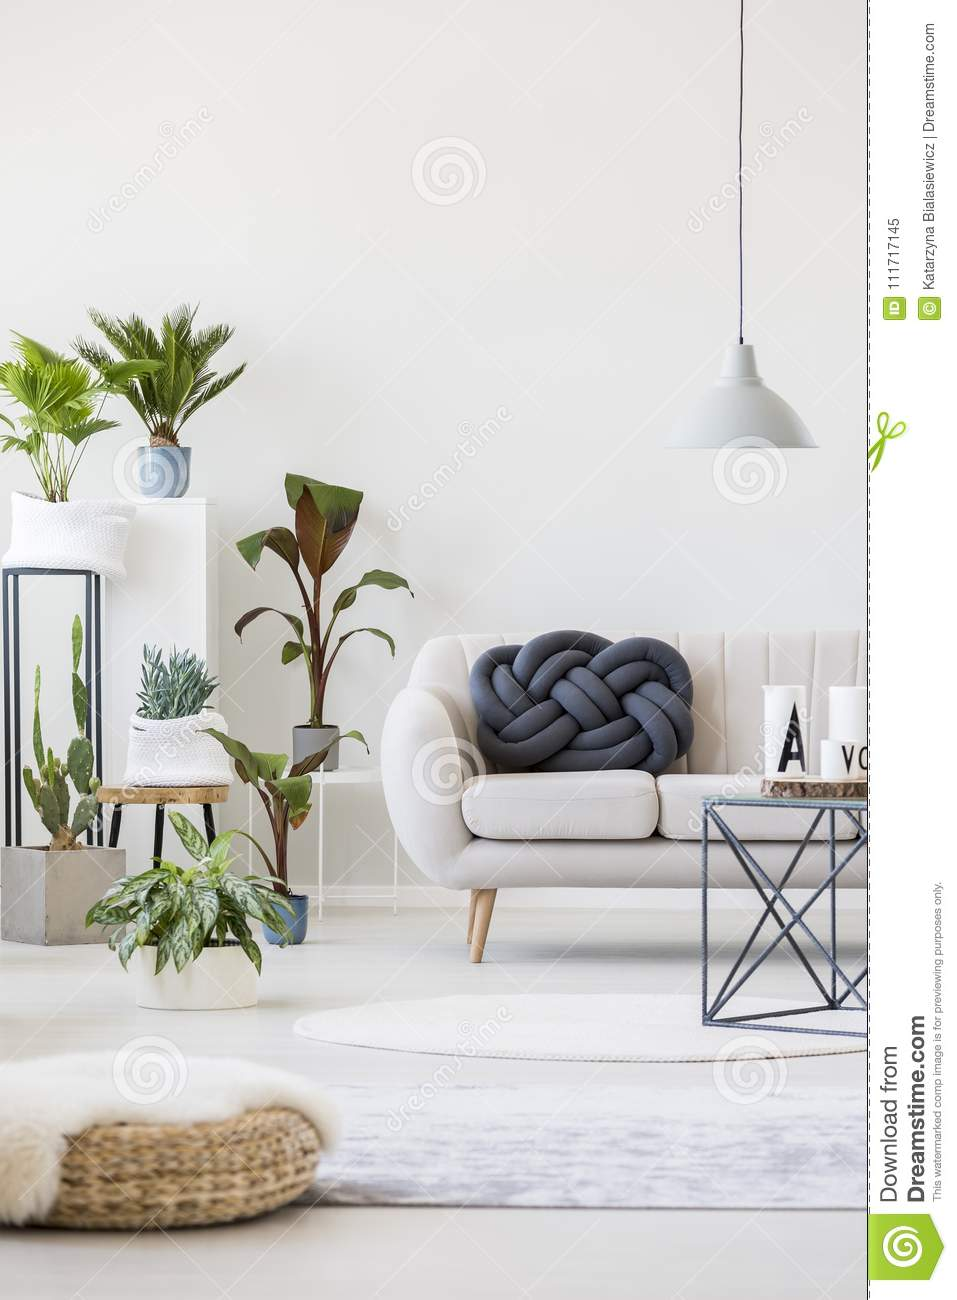 Plants in living room stock image. Image of foreground - 111717145